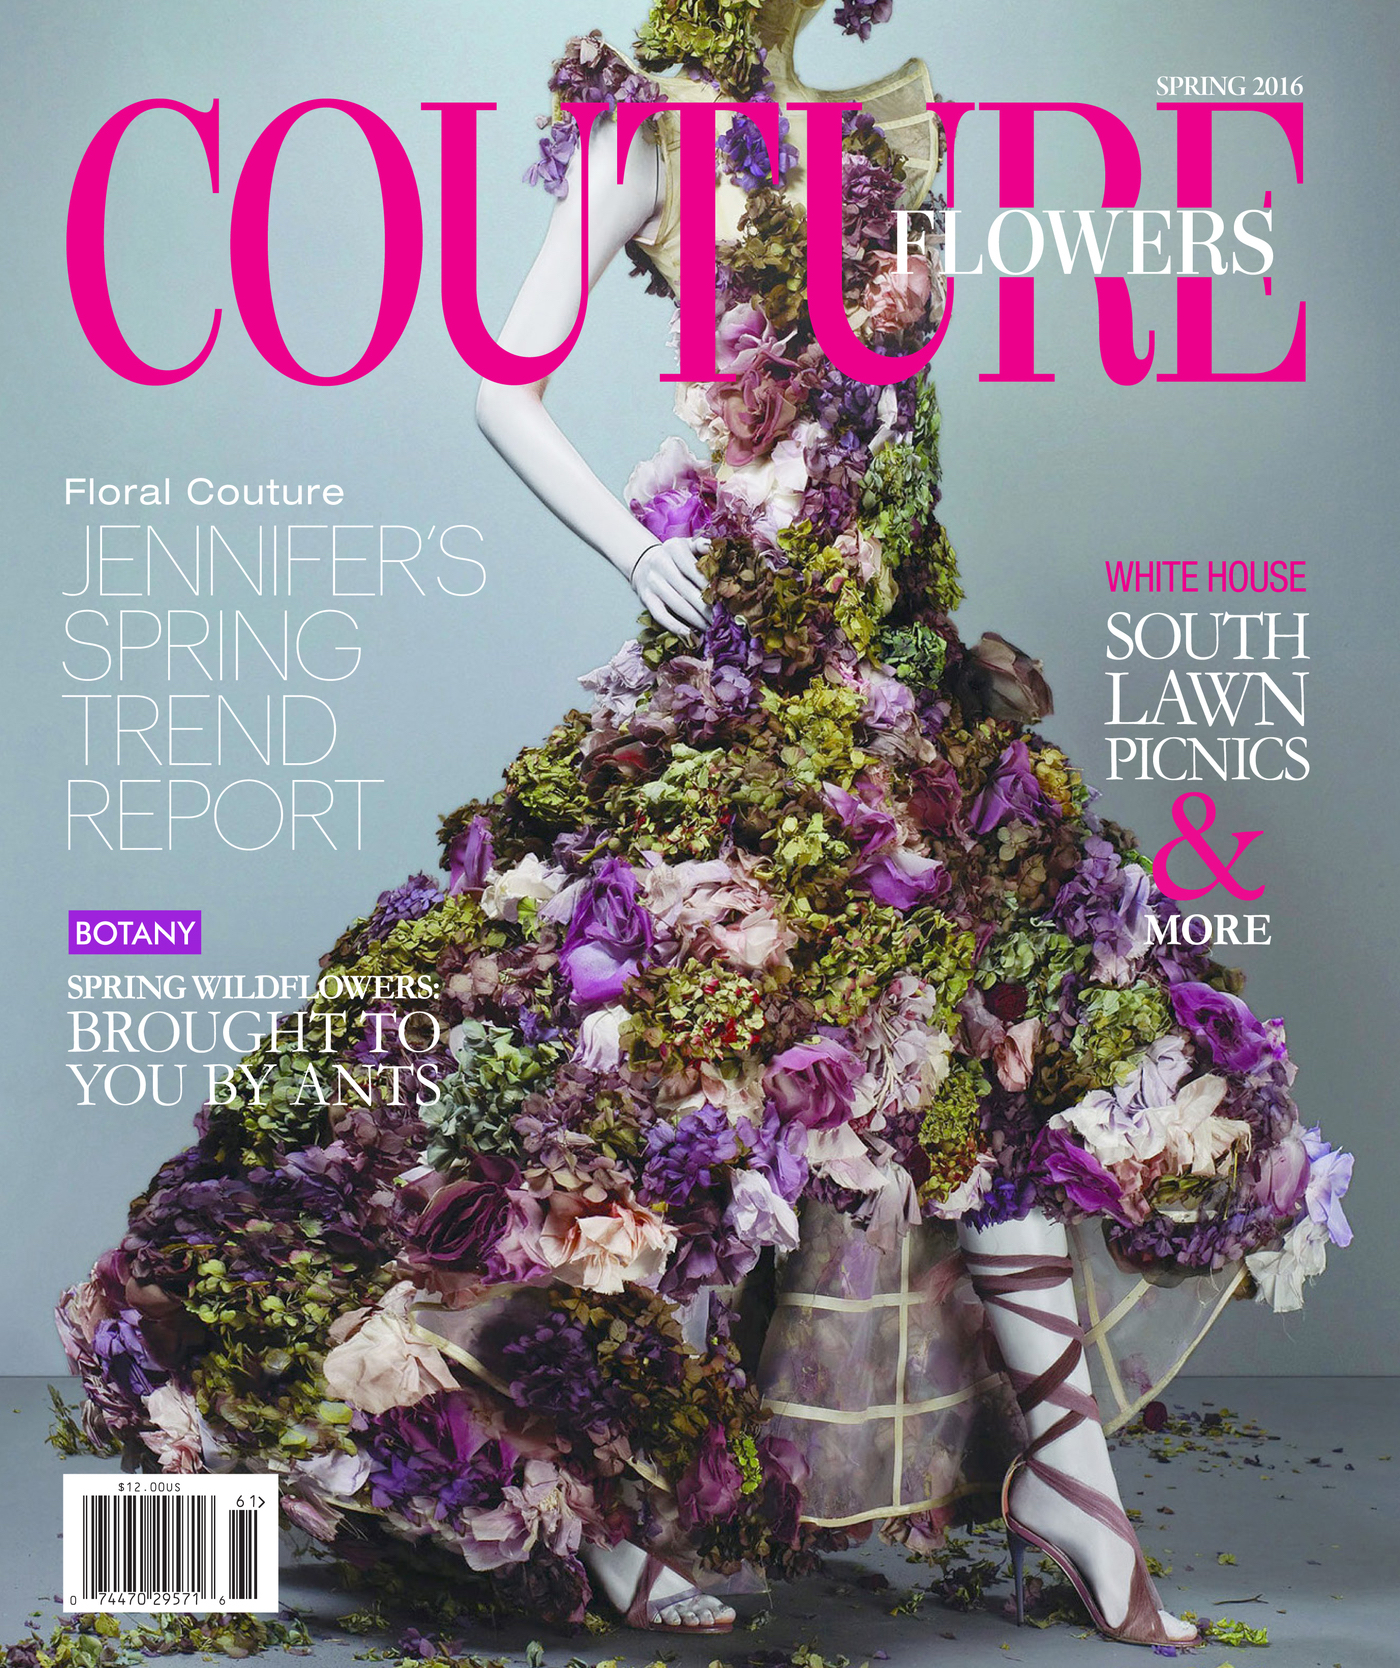 couture flowers.jpg